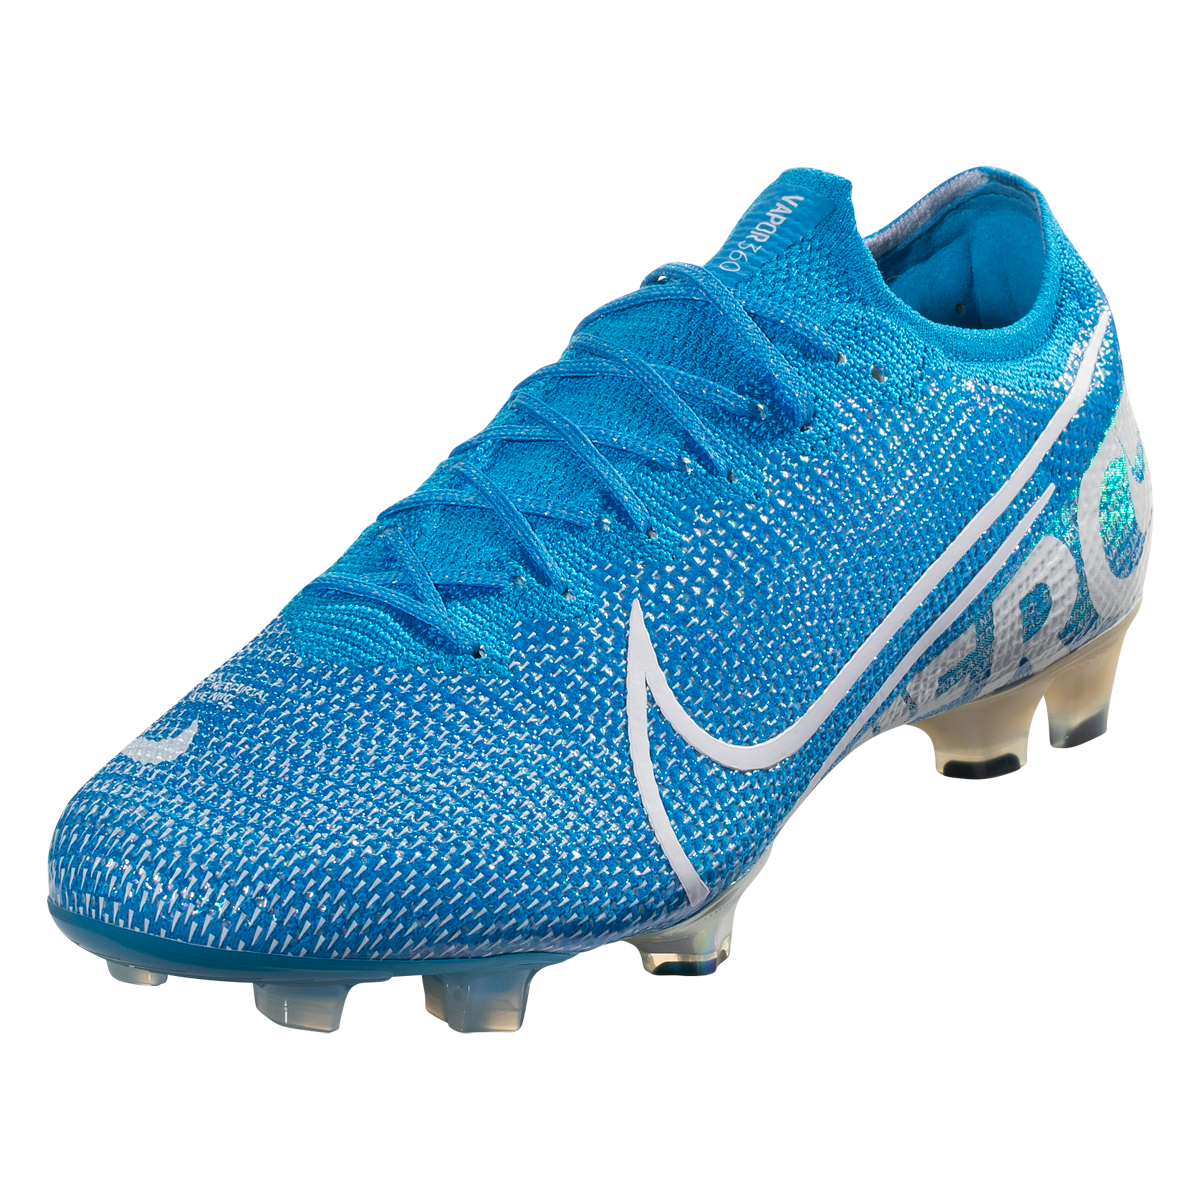 Nike Mercurial Vapor 13 Elite Fg Soccer Cleat Blue White Obsidian 7 5 Soccer Cleats Football Shoes Cleats